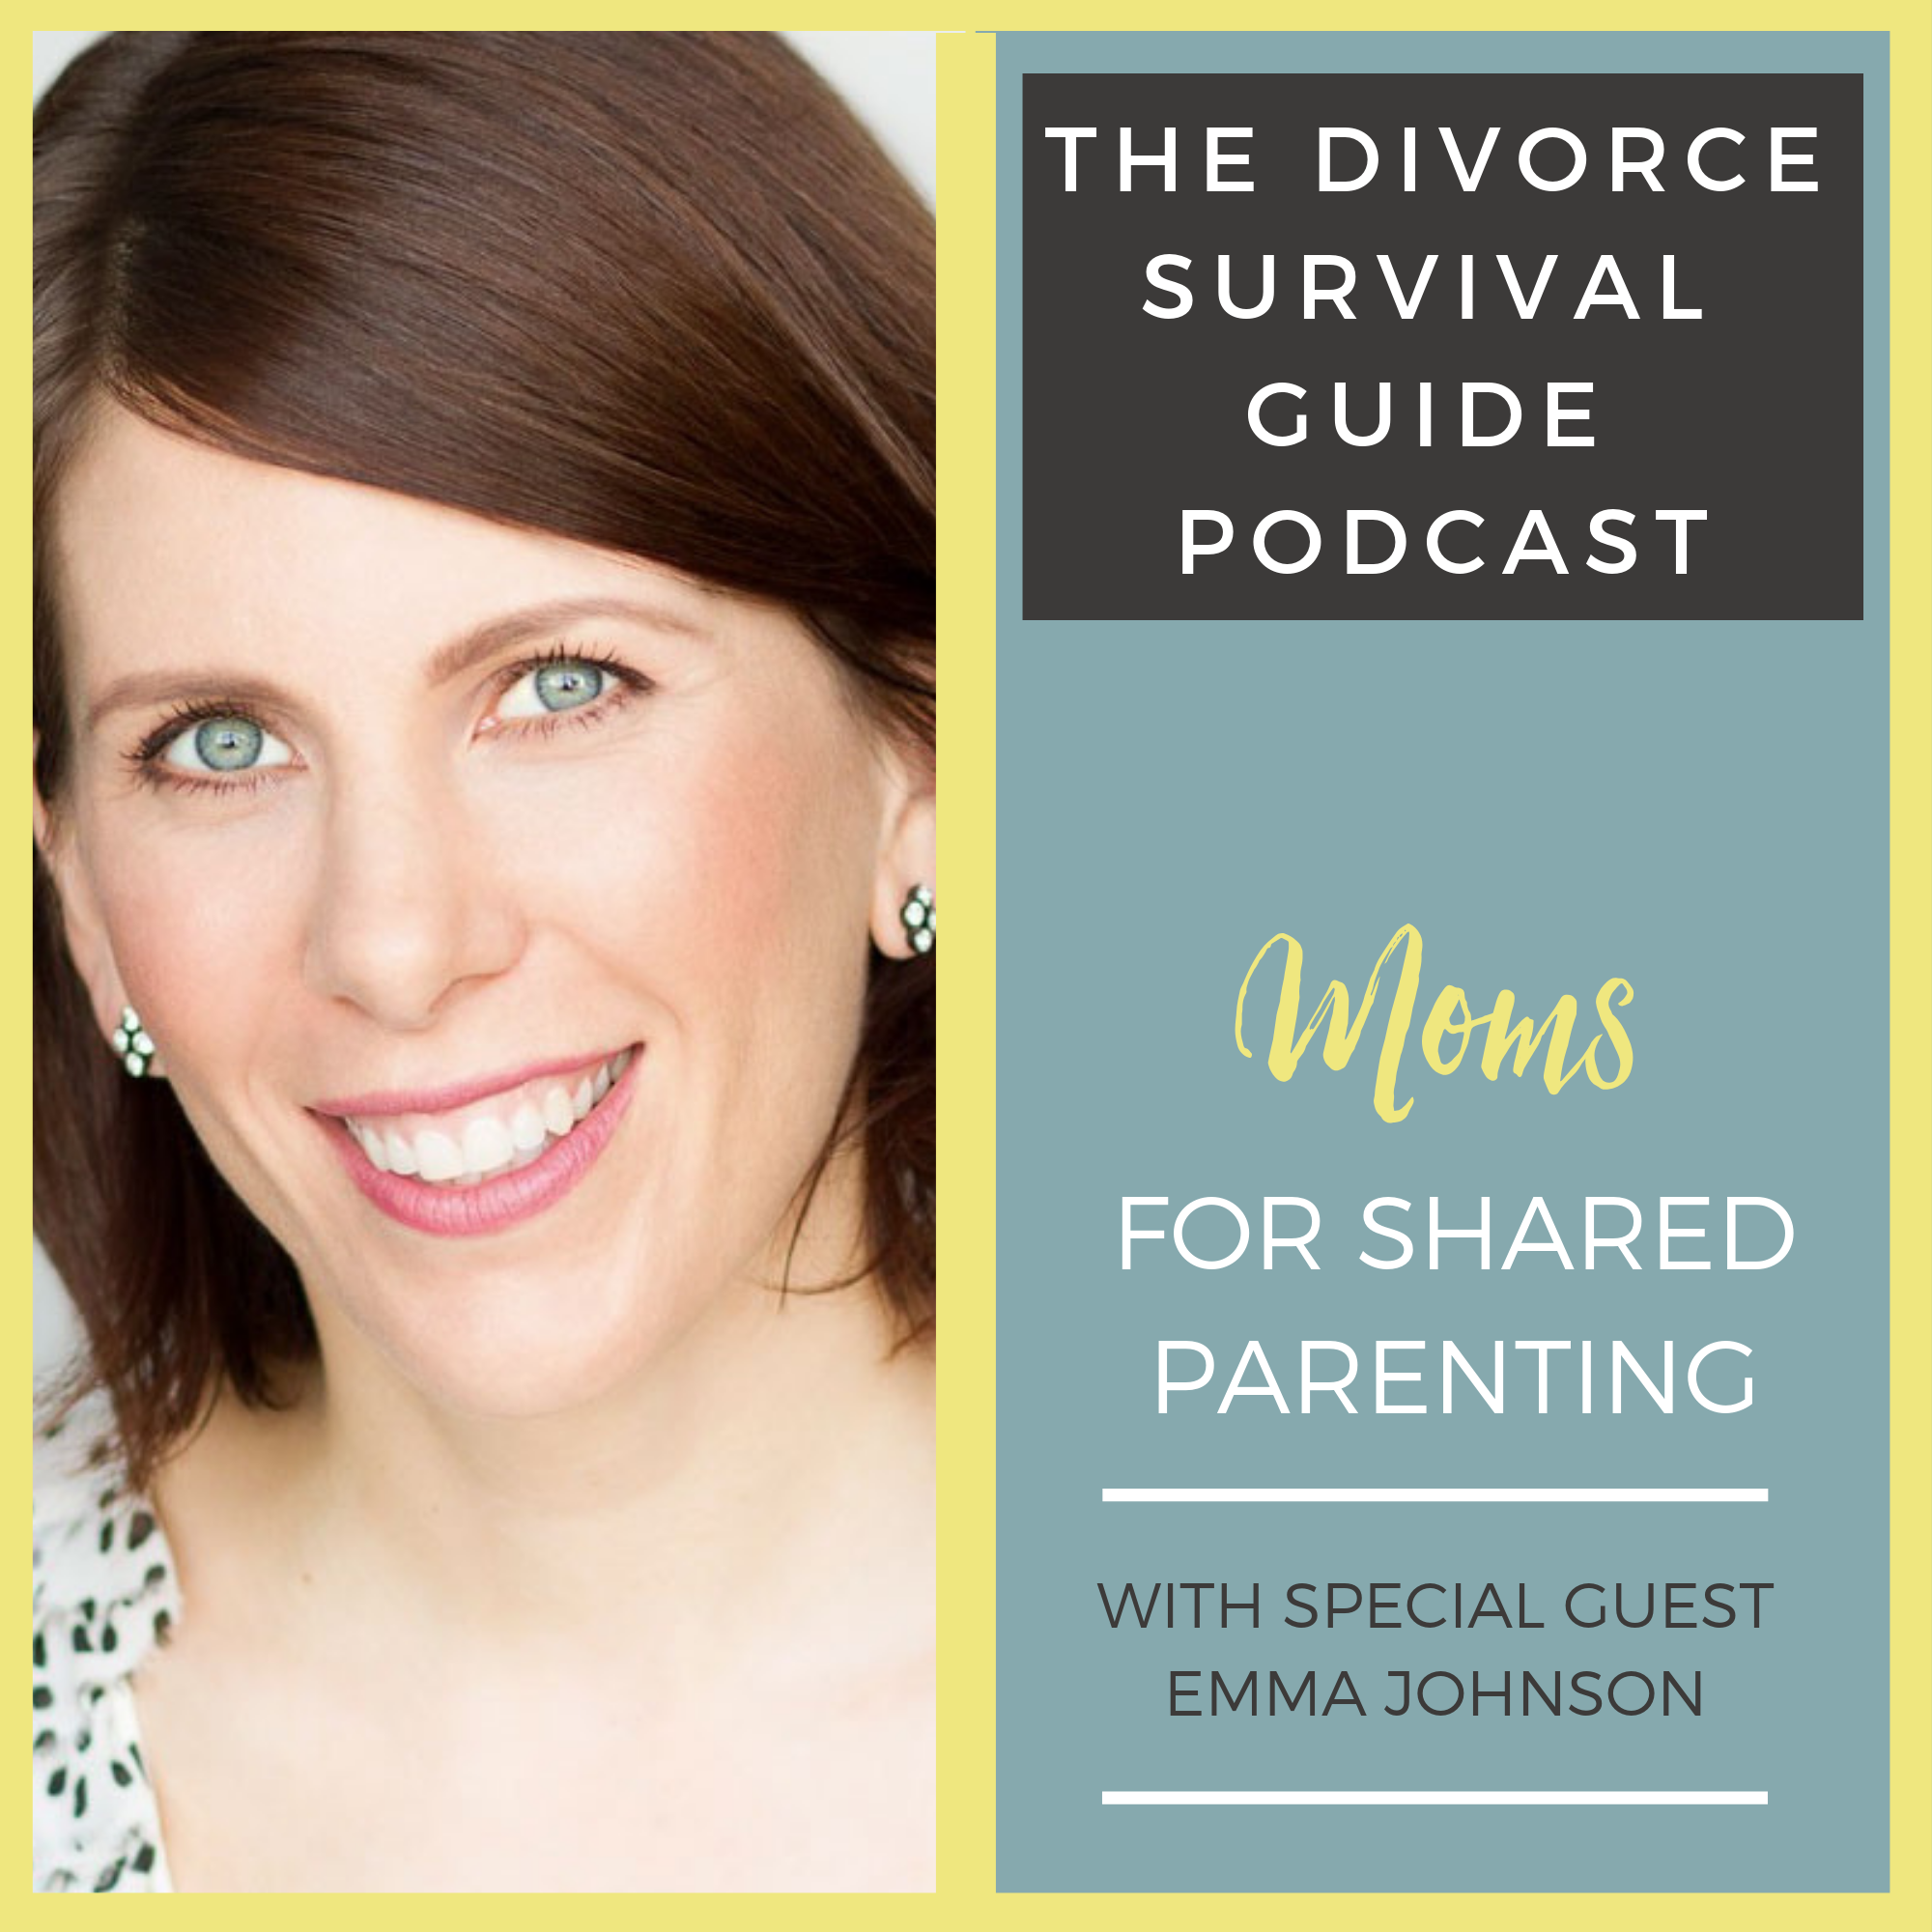 The Divorce Survival Guide Podcast - Moms for Shared Parenting with Emma Johnson